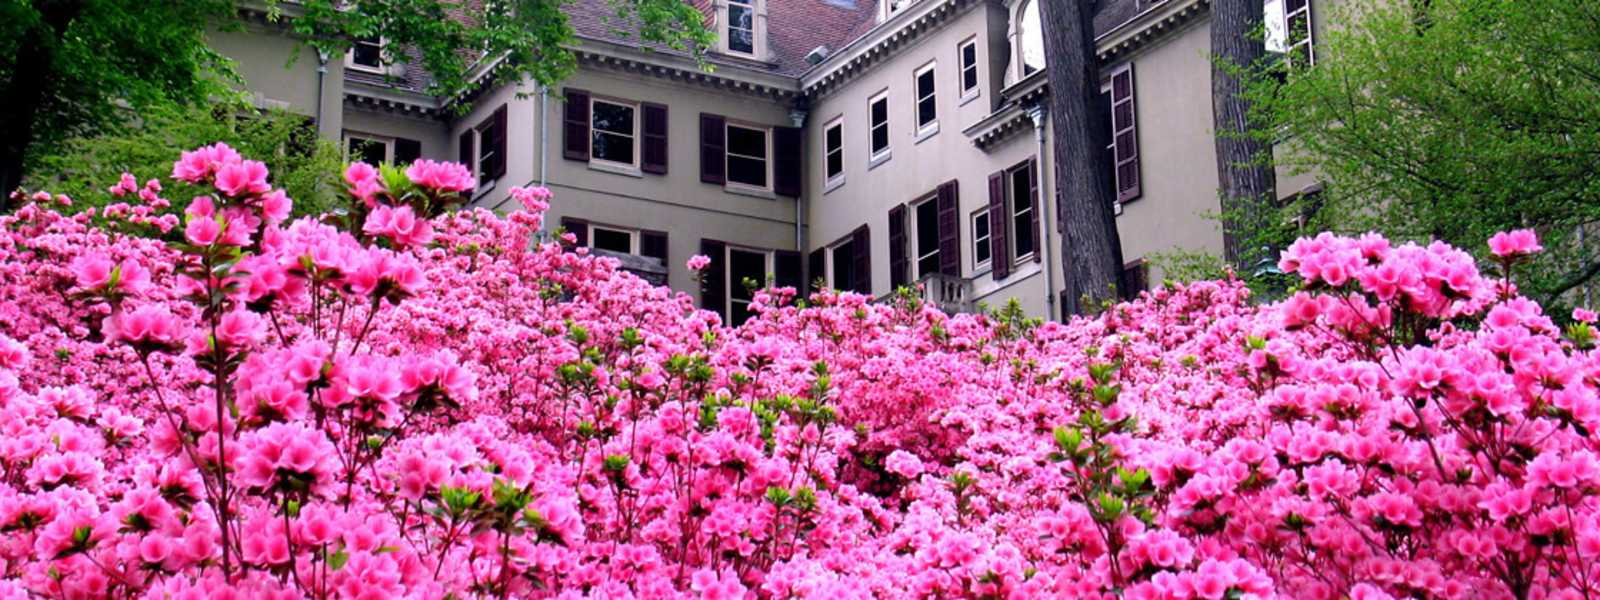 Mansion with Azaleas